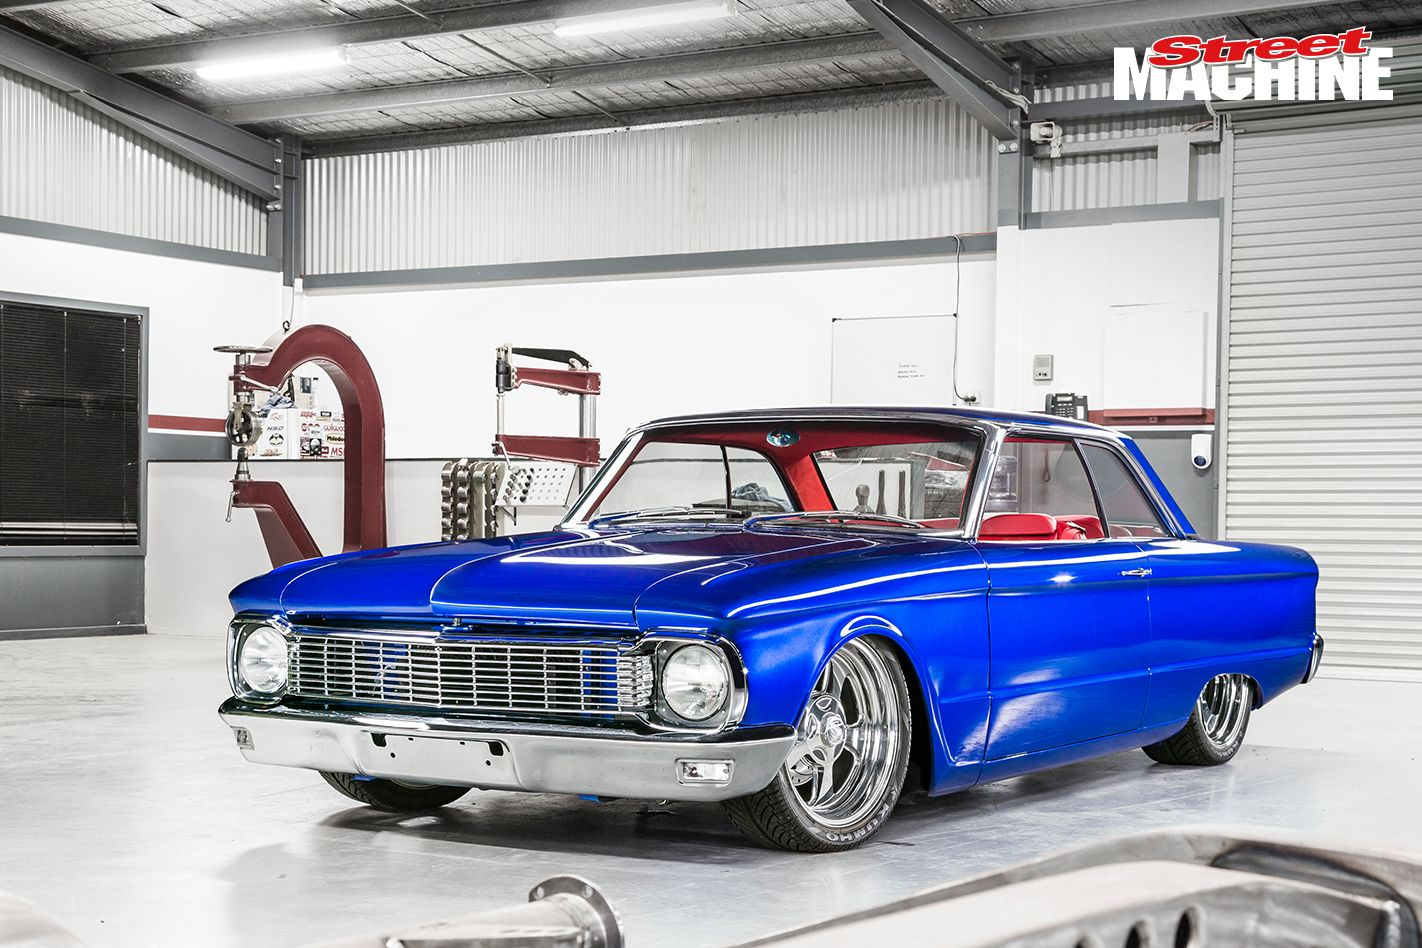 Slammed Ford Xp Falcon Coupe Classic Cars Trucks Ford Falcon Custom Car Interior